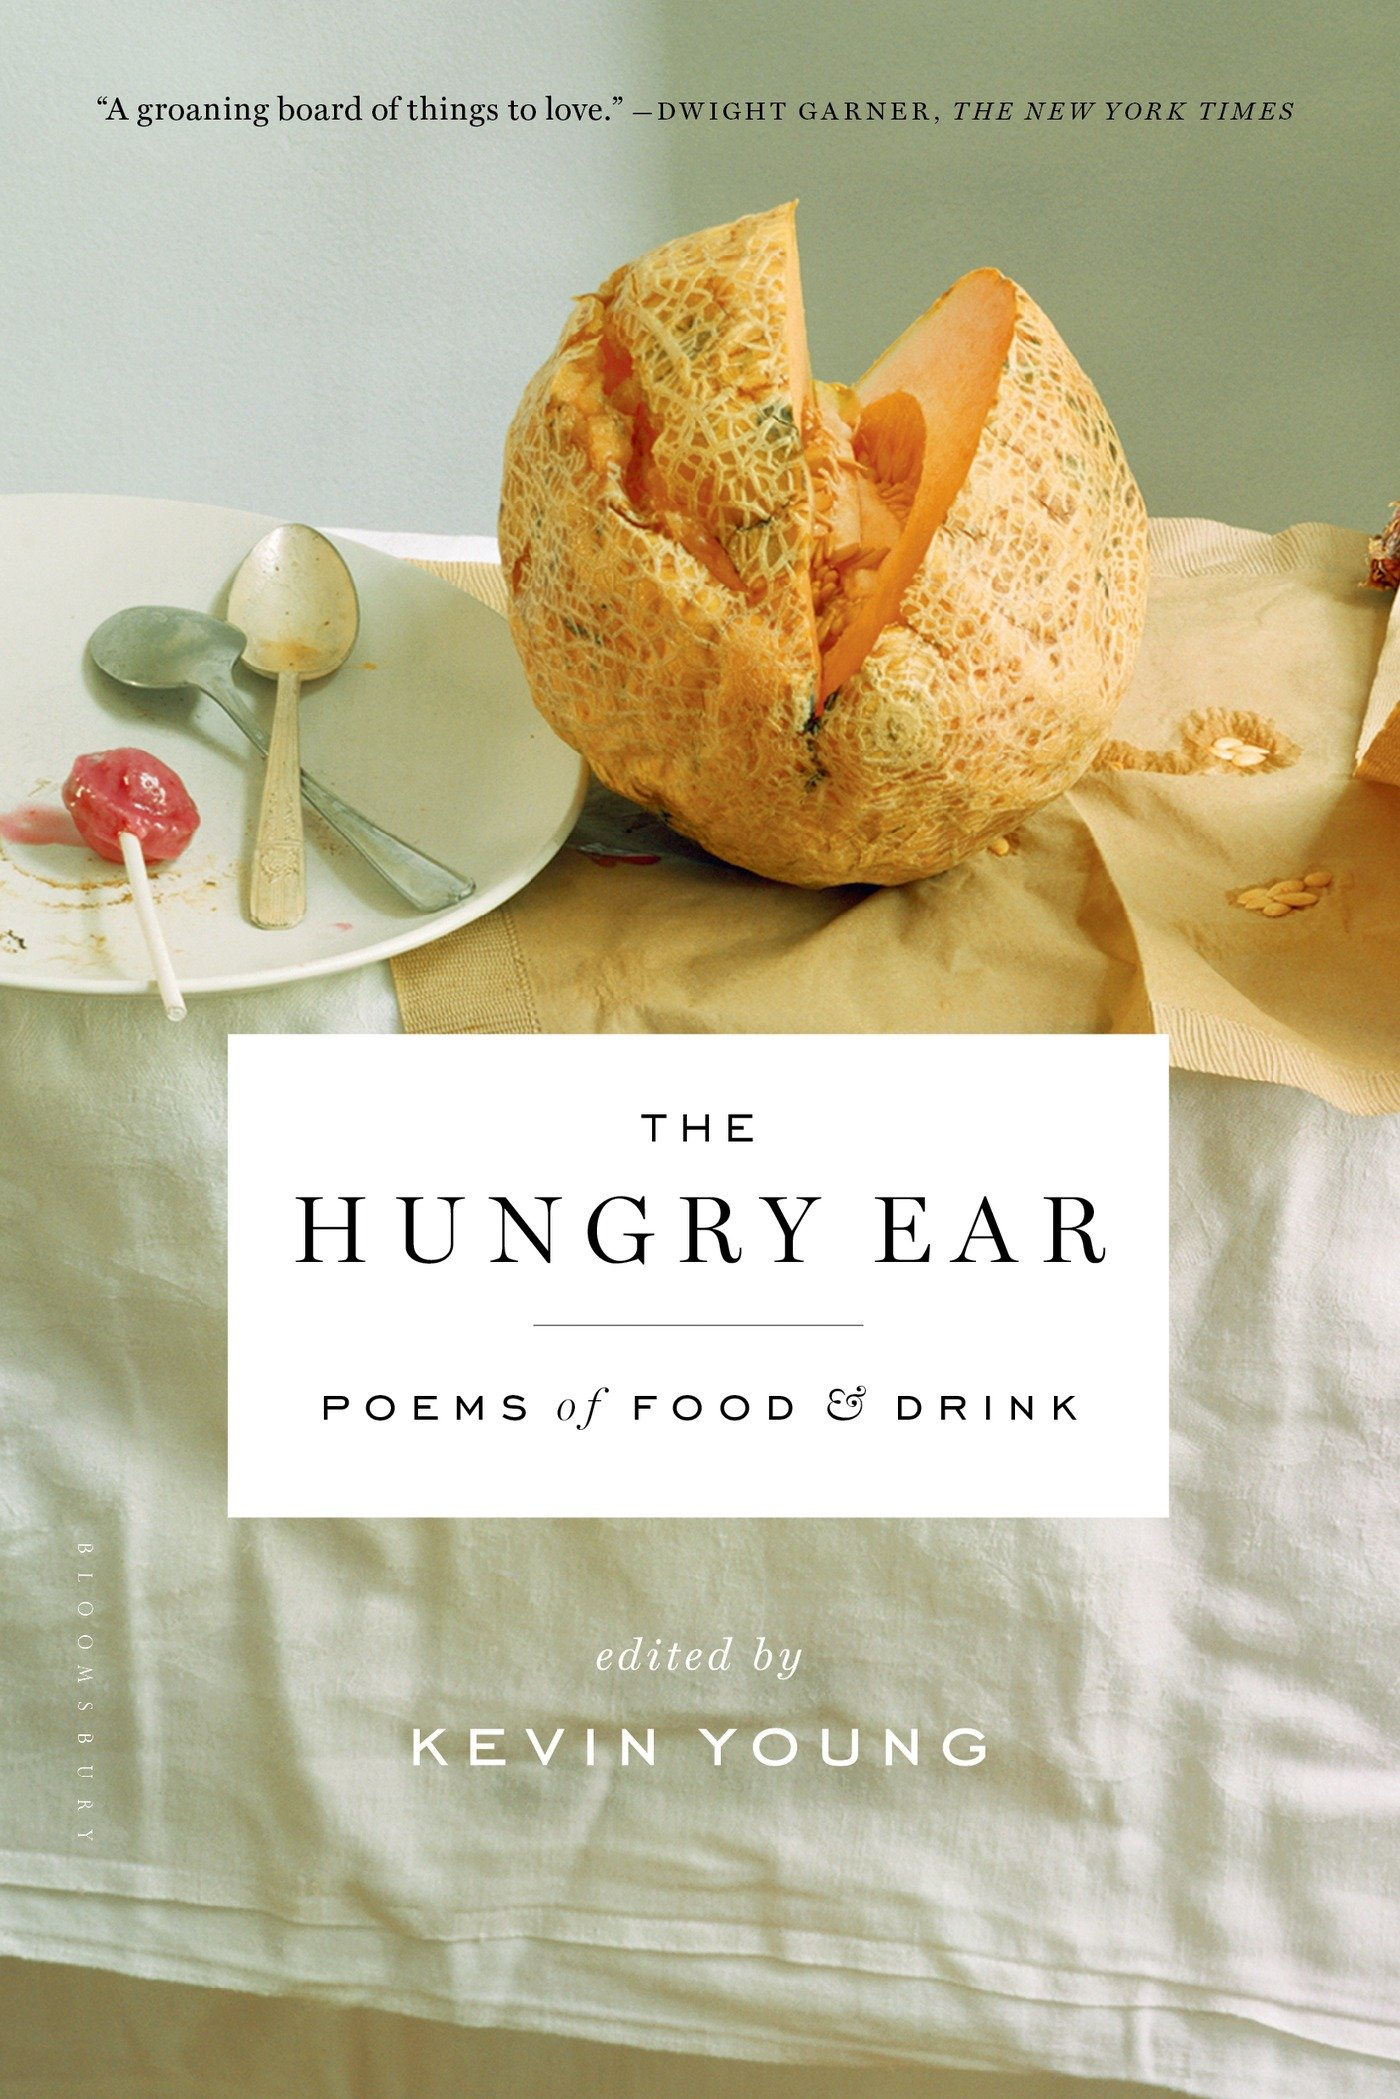 The hungry ear poems of food and drink kevin young 9781608197682 the hungry ear poems of food and drink kevin young 9781608197682 amazon books forumfinder Gallery